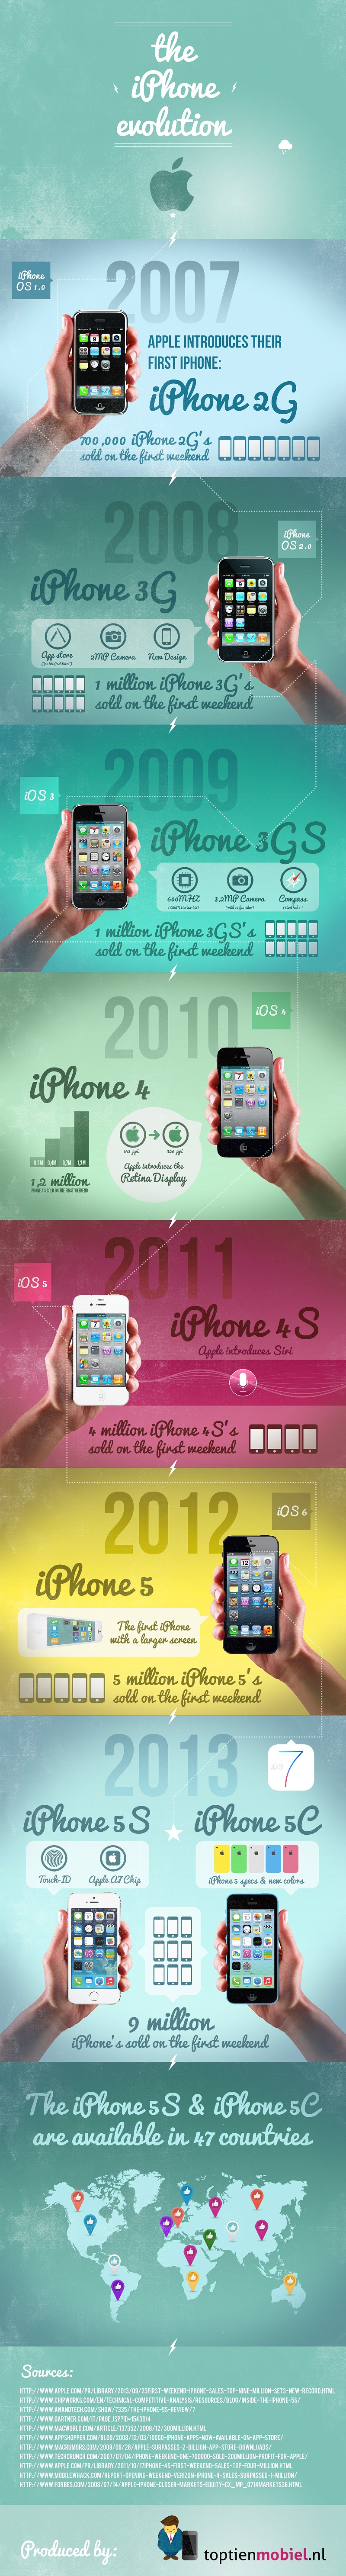 the-iphone-evolution-2-big